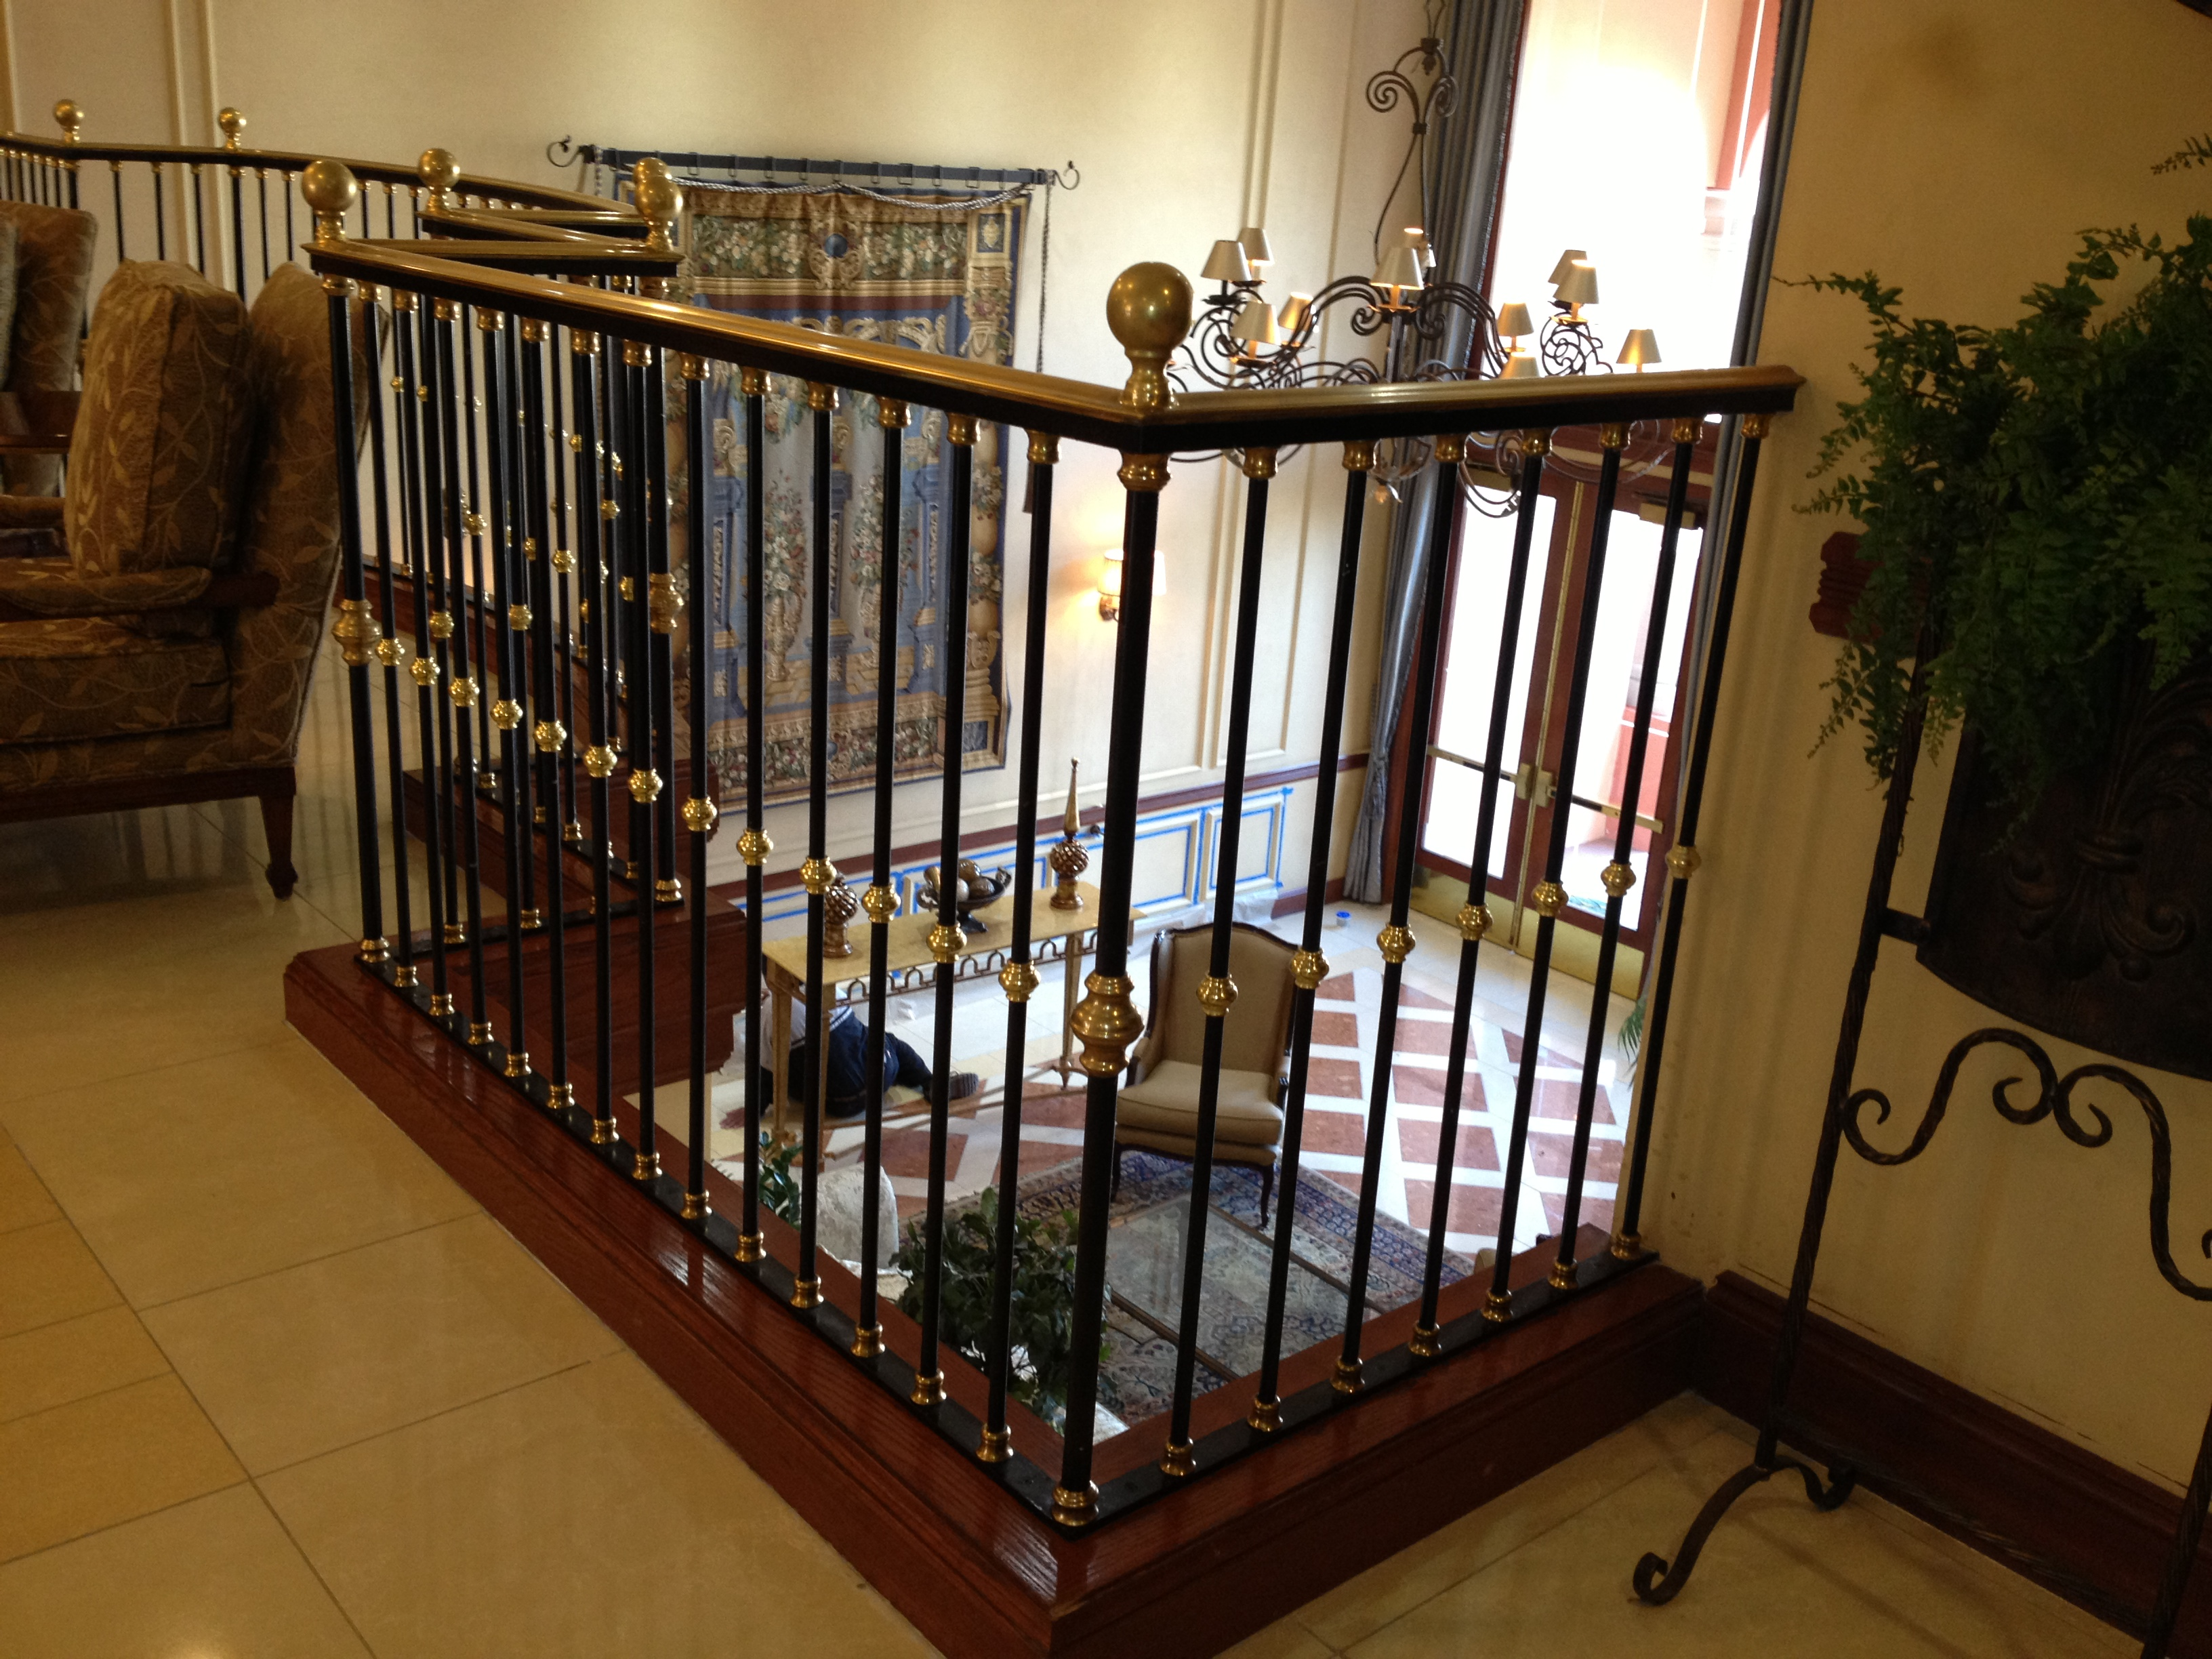 Trend On The Rise Wood And Metal Wall Gallery: Handrails For Stairs Interior